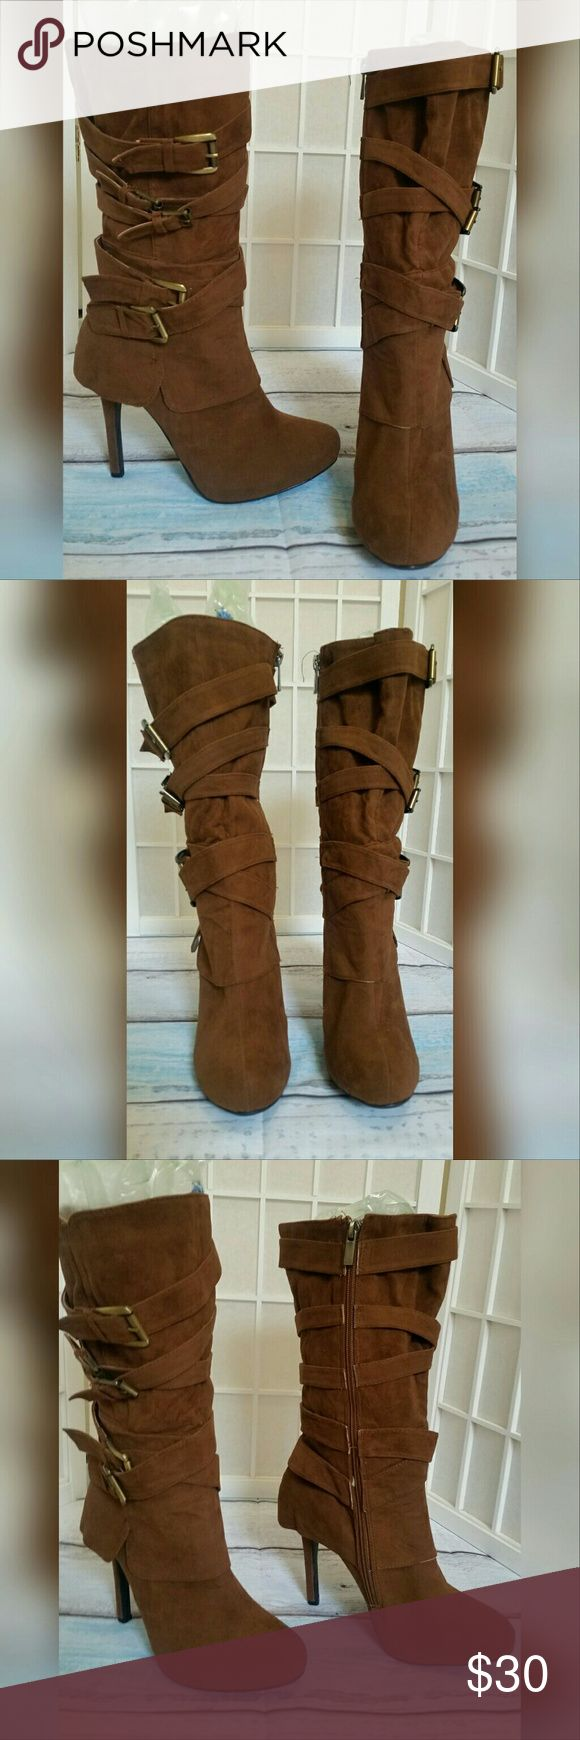 New Anne Michelle brown boot w/buckles  9 New Anne Michelle brown boot w /buckles 9  Good condition   All man made materials   Heel is aprox. 4.5in. Front platform is aprox. 1in.  😇Selling for a friends mother Anne Michelle Shoes Heeled Boots